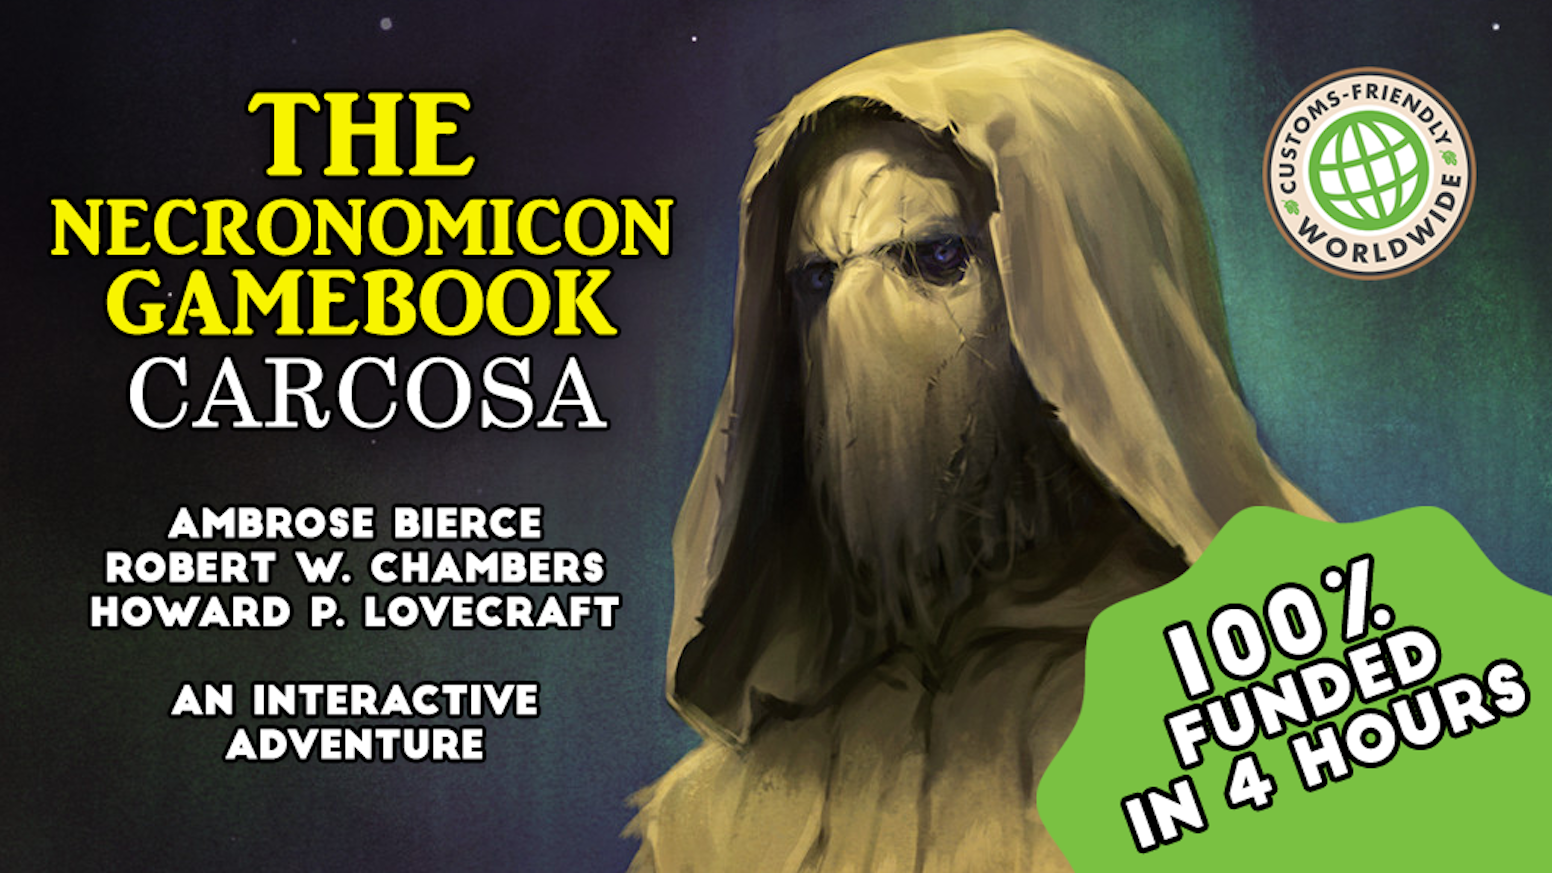 A faithful gamebook adaptation from Bierce, Chambers and Lovecraft's horror classics. [ITA] Un fedele adattamento a librogioco dei racconti horror di Bierce, Chambers e Lovecraft.